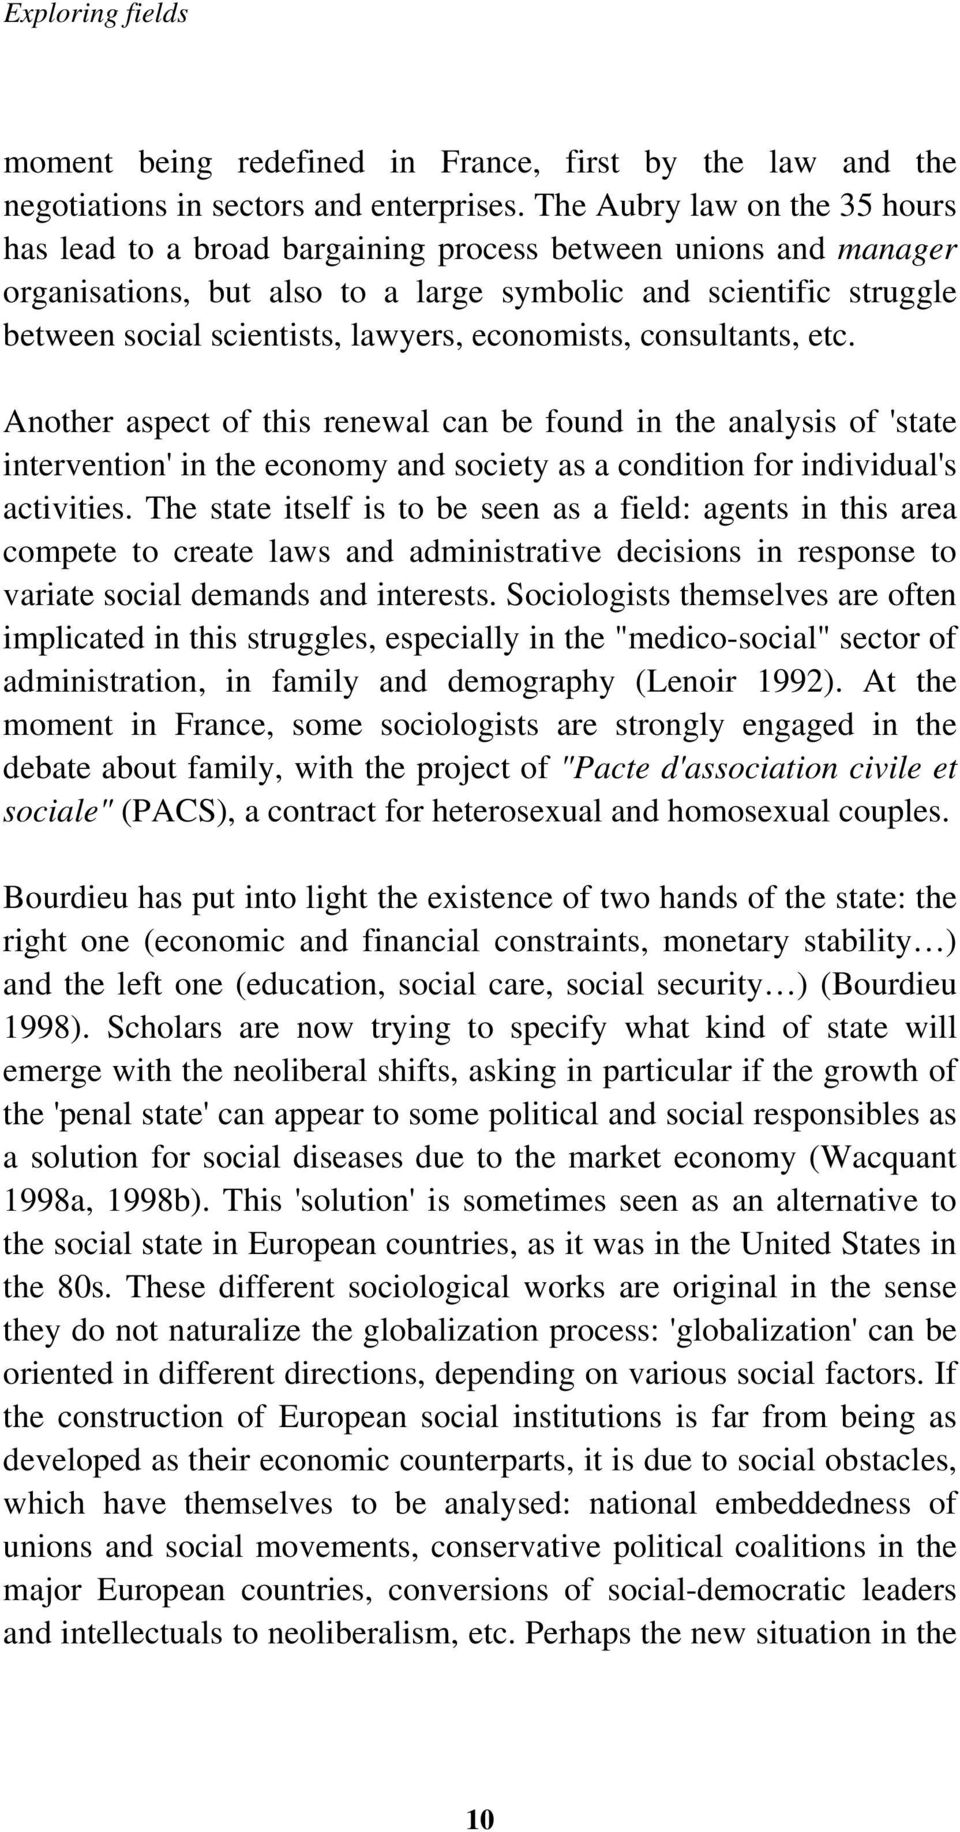 economists, consultants, etc. Another aspect of this renewal can be found in the analysis of 'state intervention' in the economy and society as a condition for individual's activities.